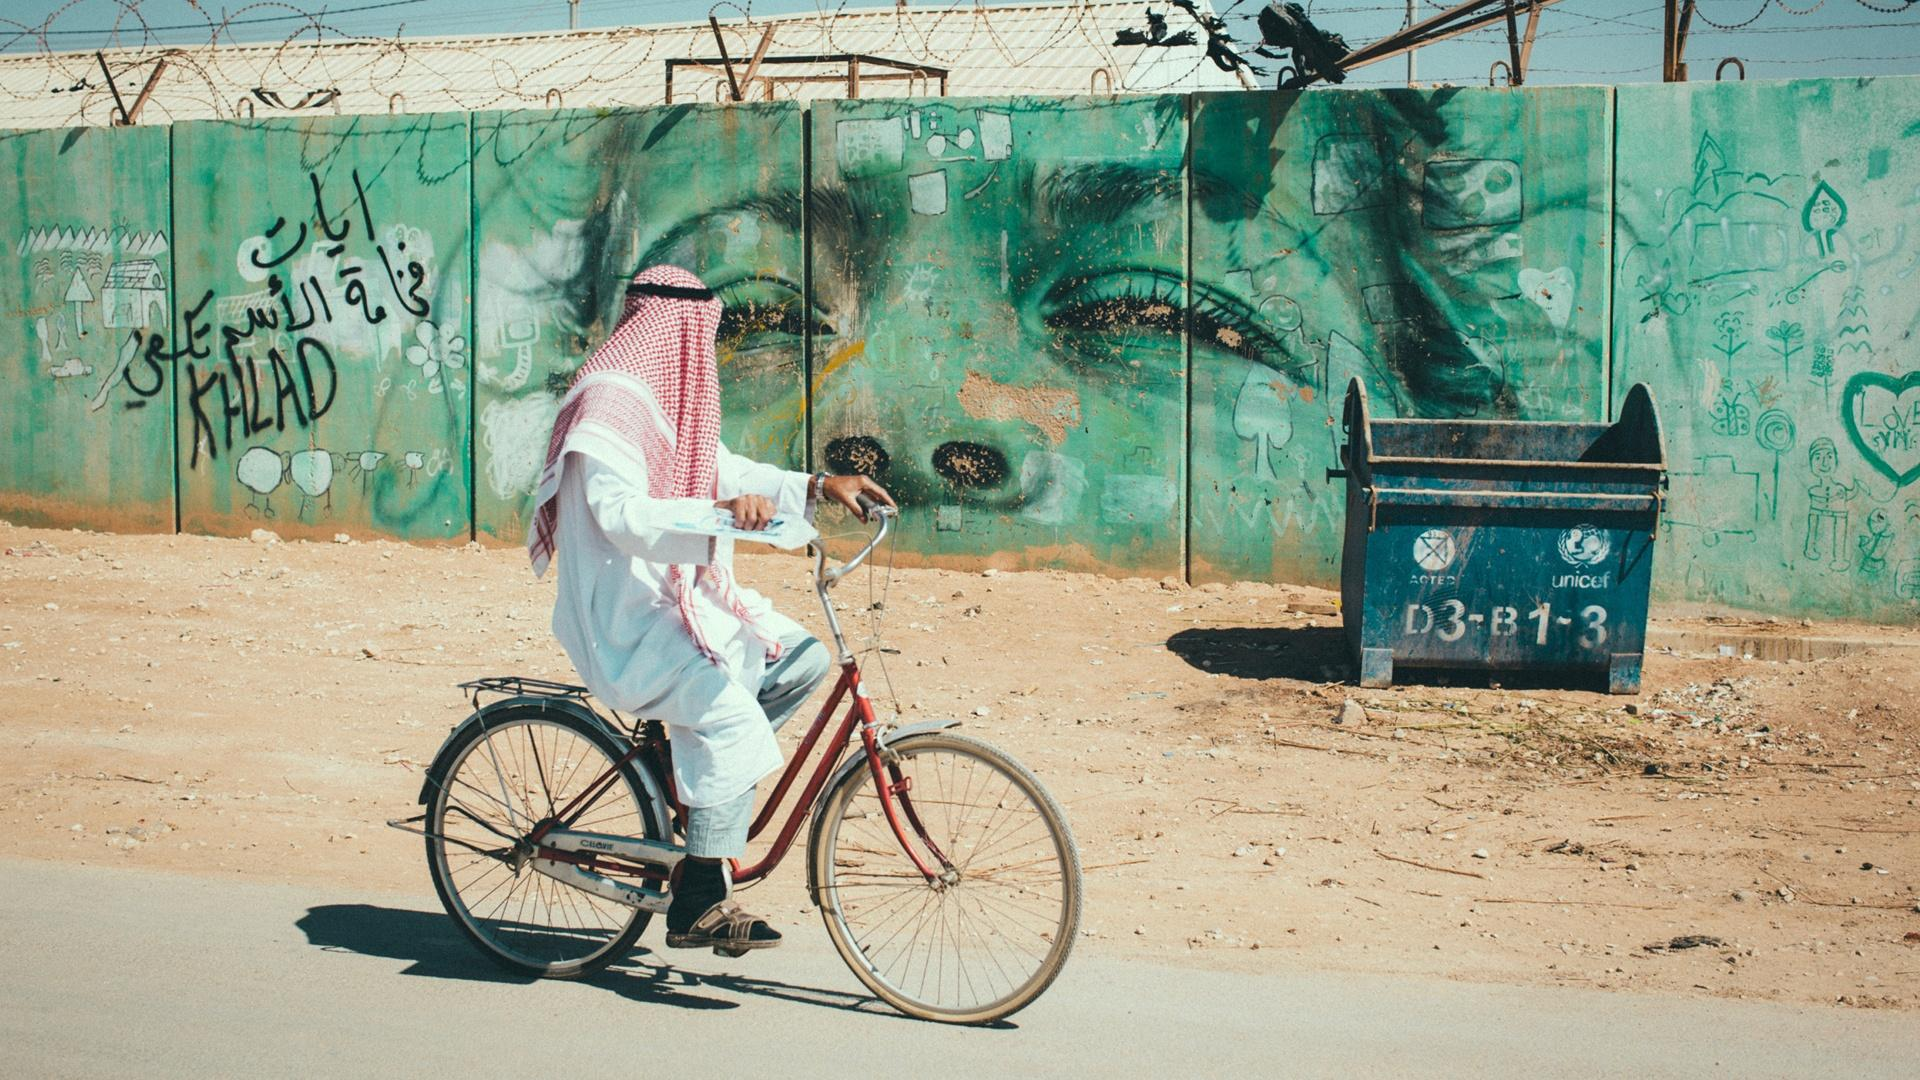 A cyclist, passes graffiti in Gaza, Palestinian Territory. In Gaza, the aquifer is overdrawn and water has been scarce for decades.